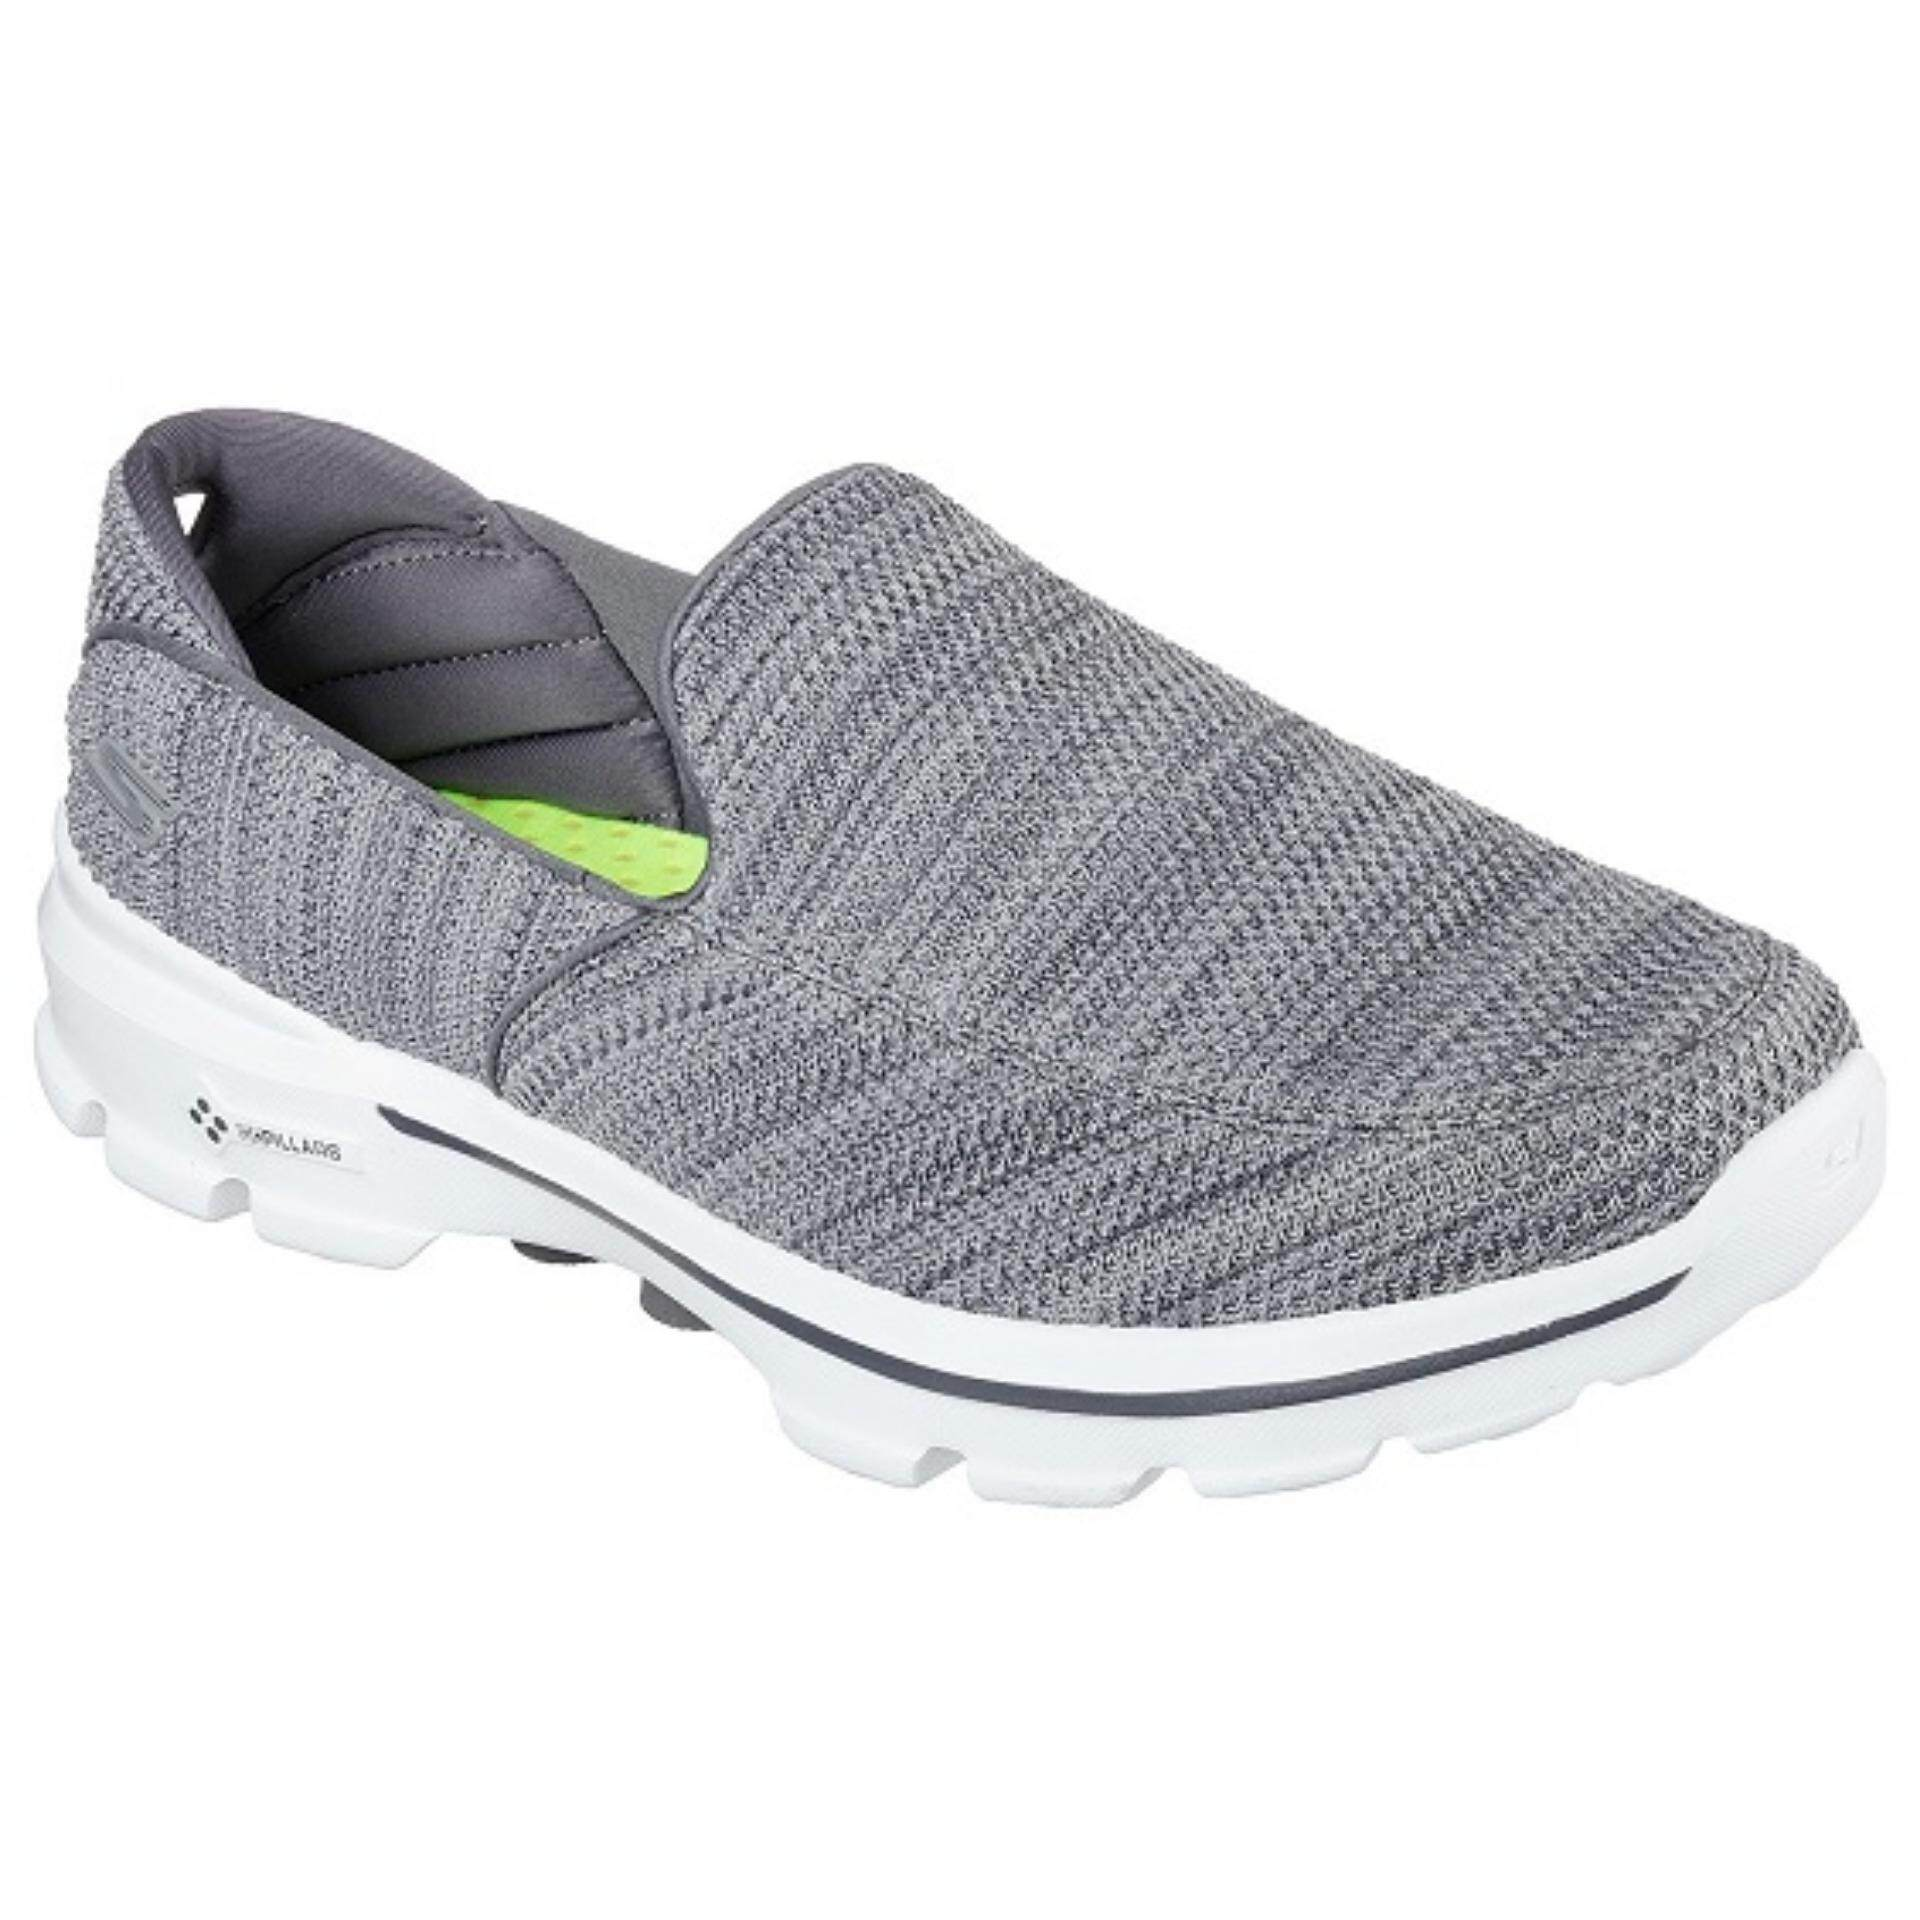 0936f47099e6 Skechers Malaysia Sports   Outdoors - Shoes   Clothing price in ...